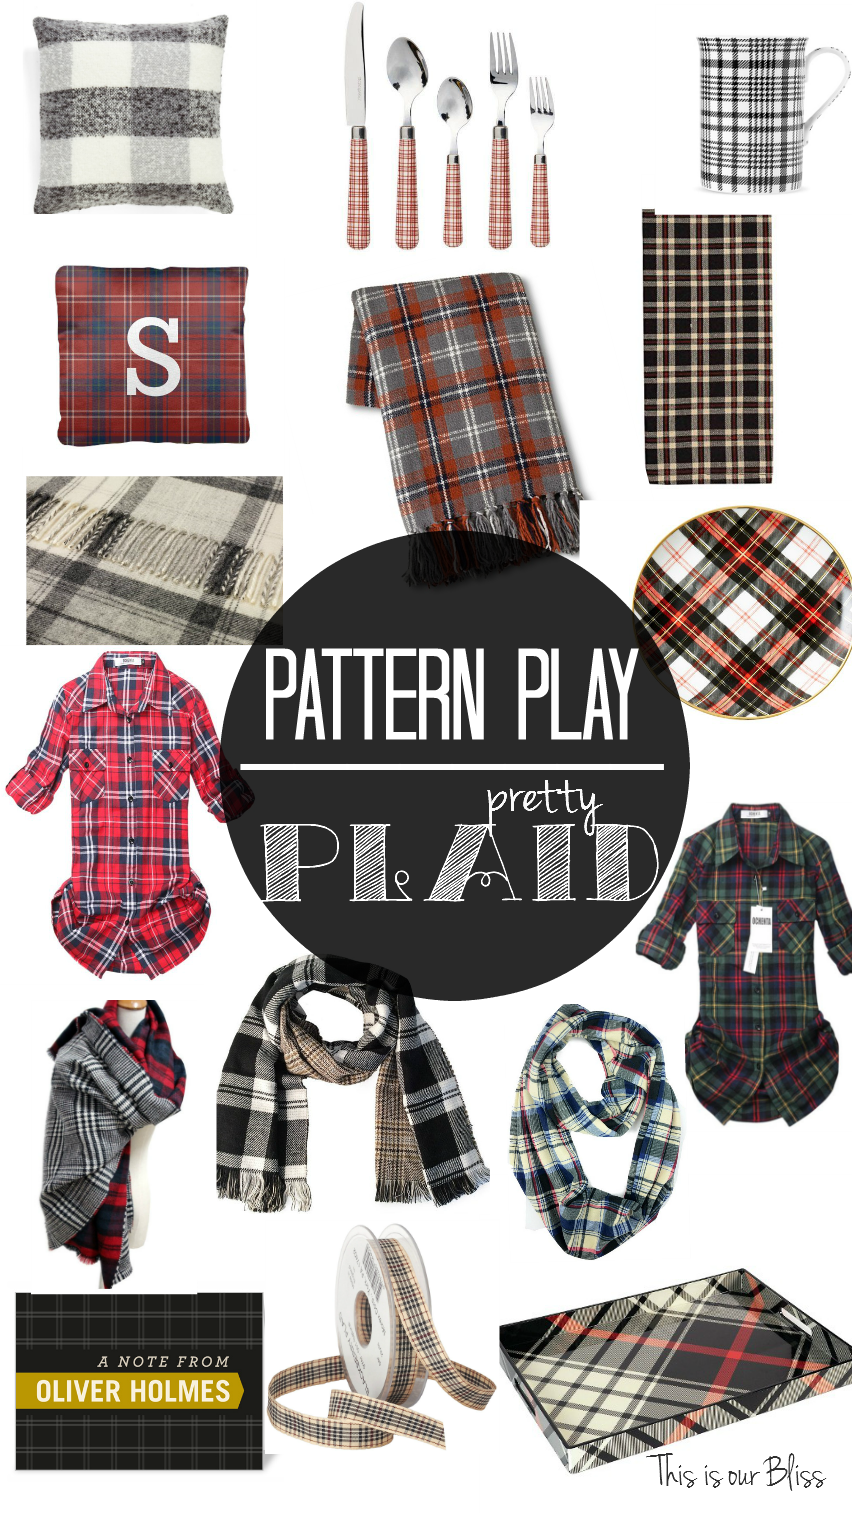 Pattern play pretty plaid fall plaid round up for the home and closet 1 This is our Bliss